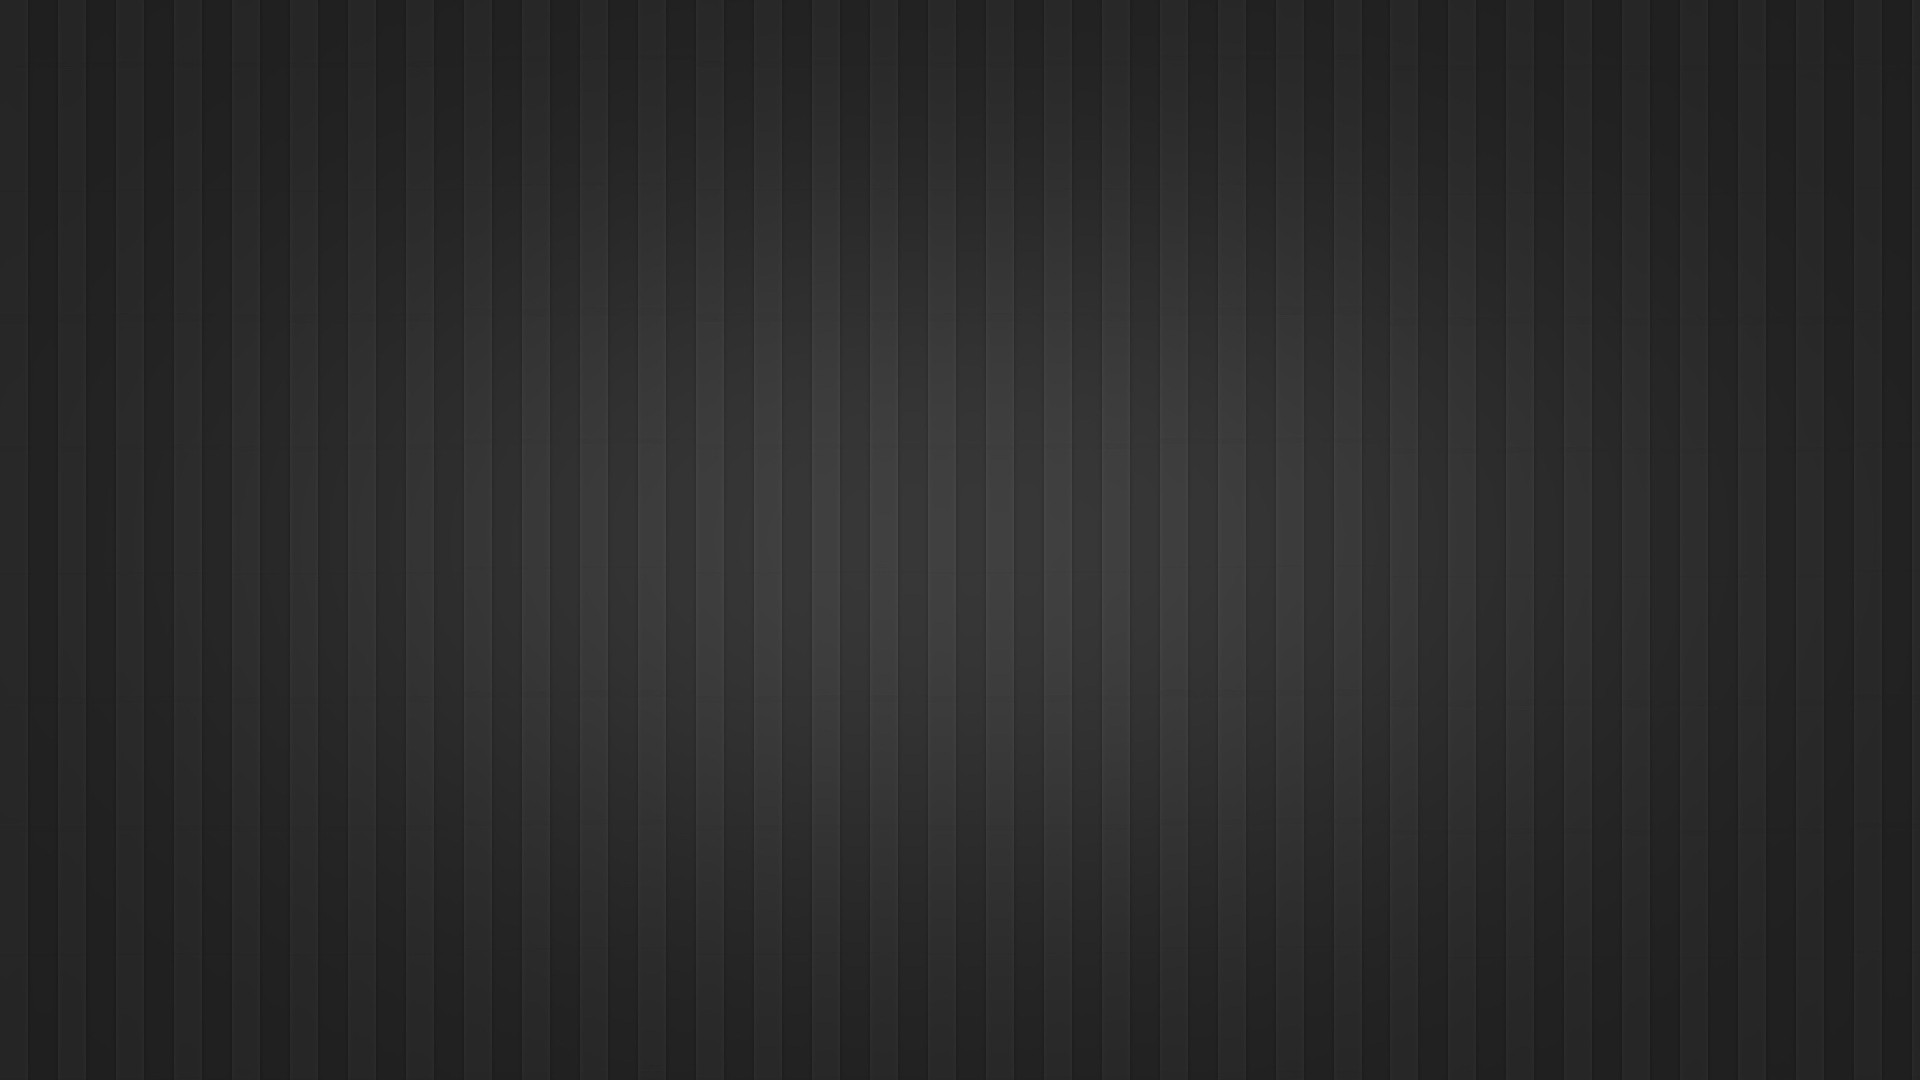 Dark Gray Wallpaper - WallpaperSafari